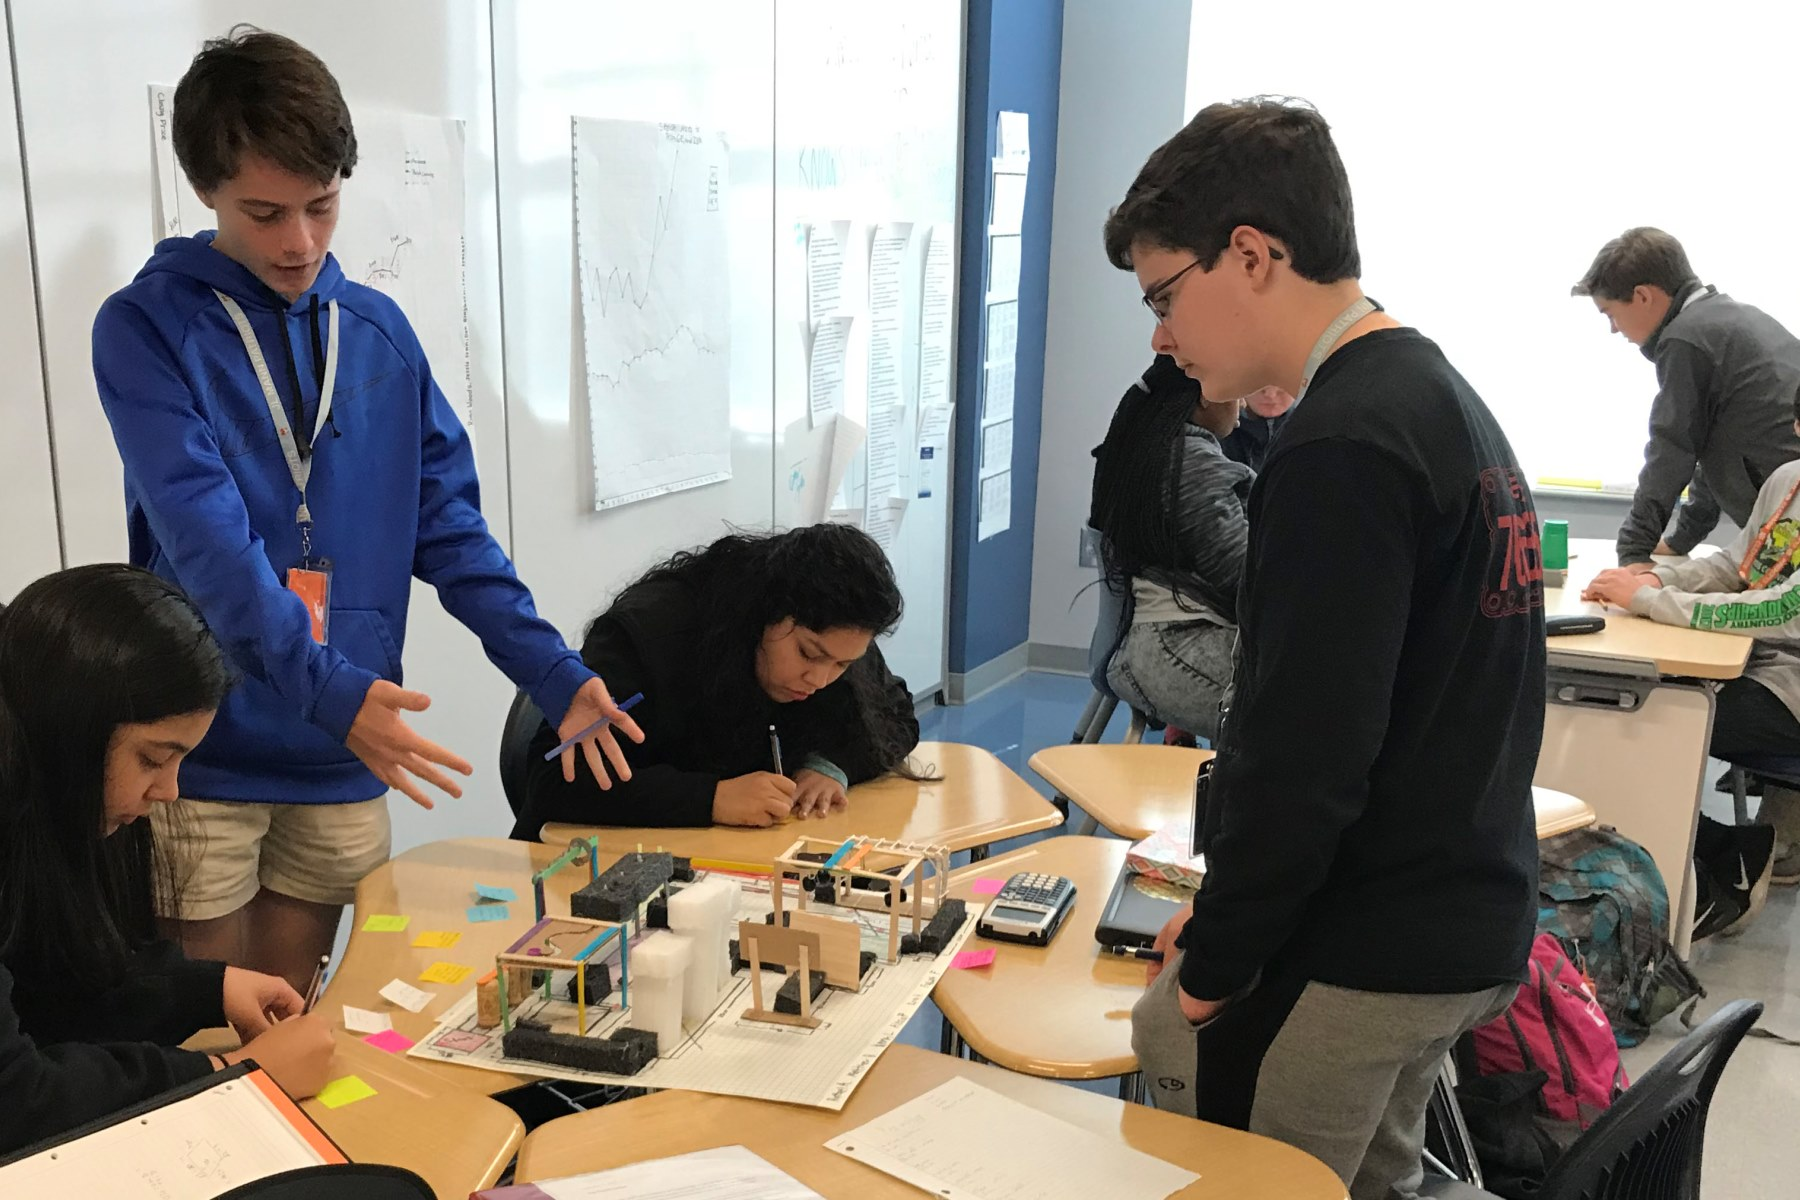 A group of high schools students working on a robotics project